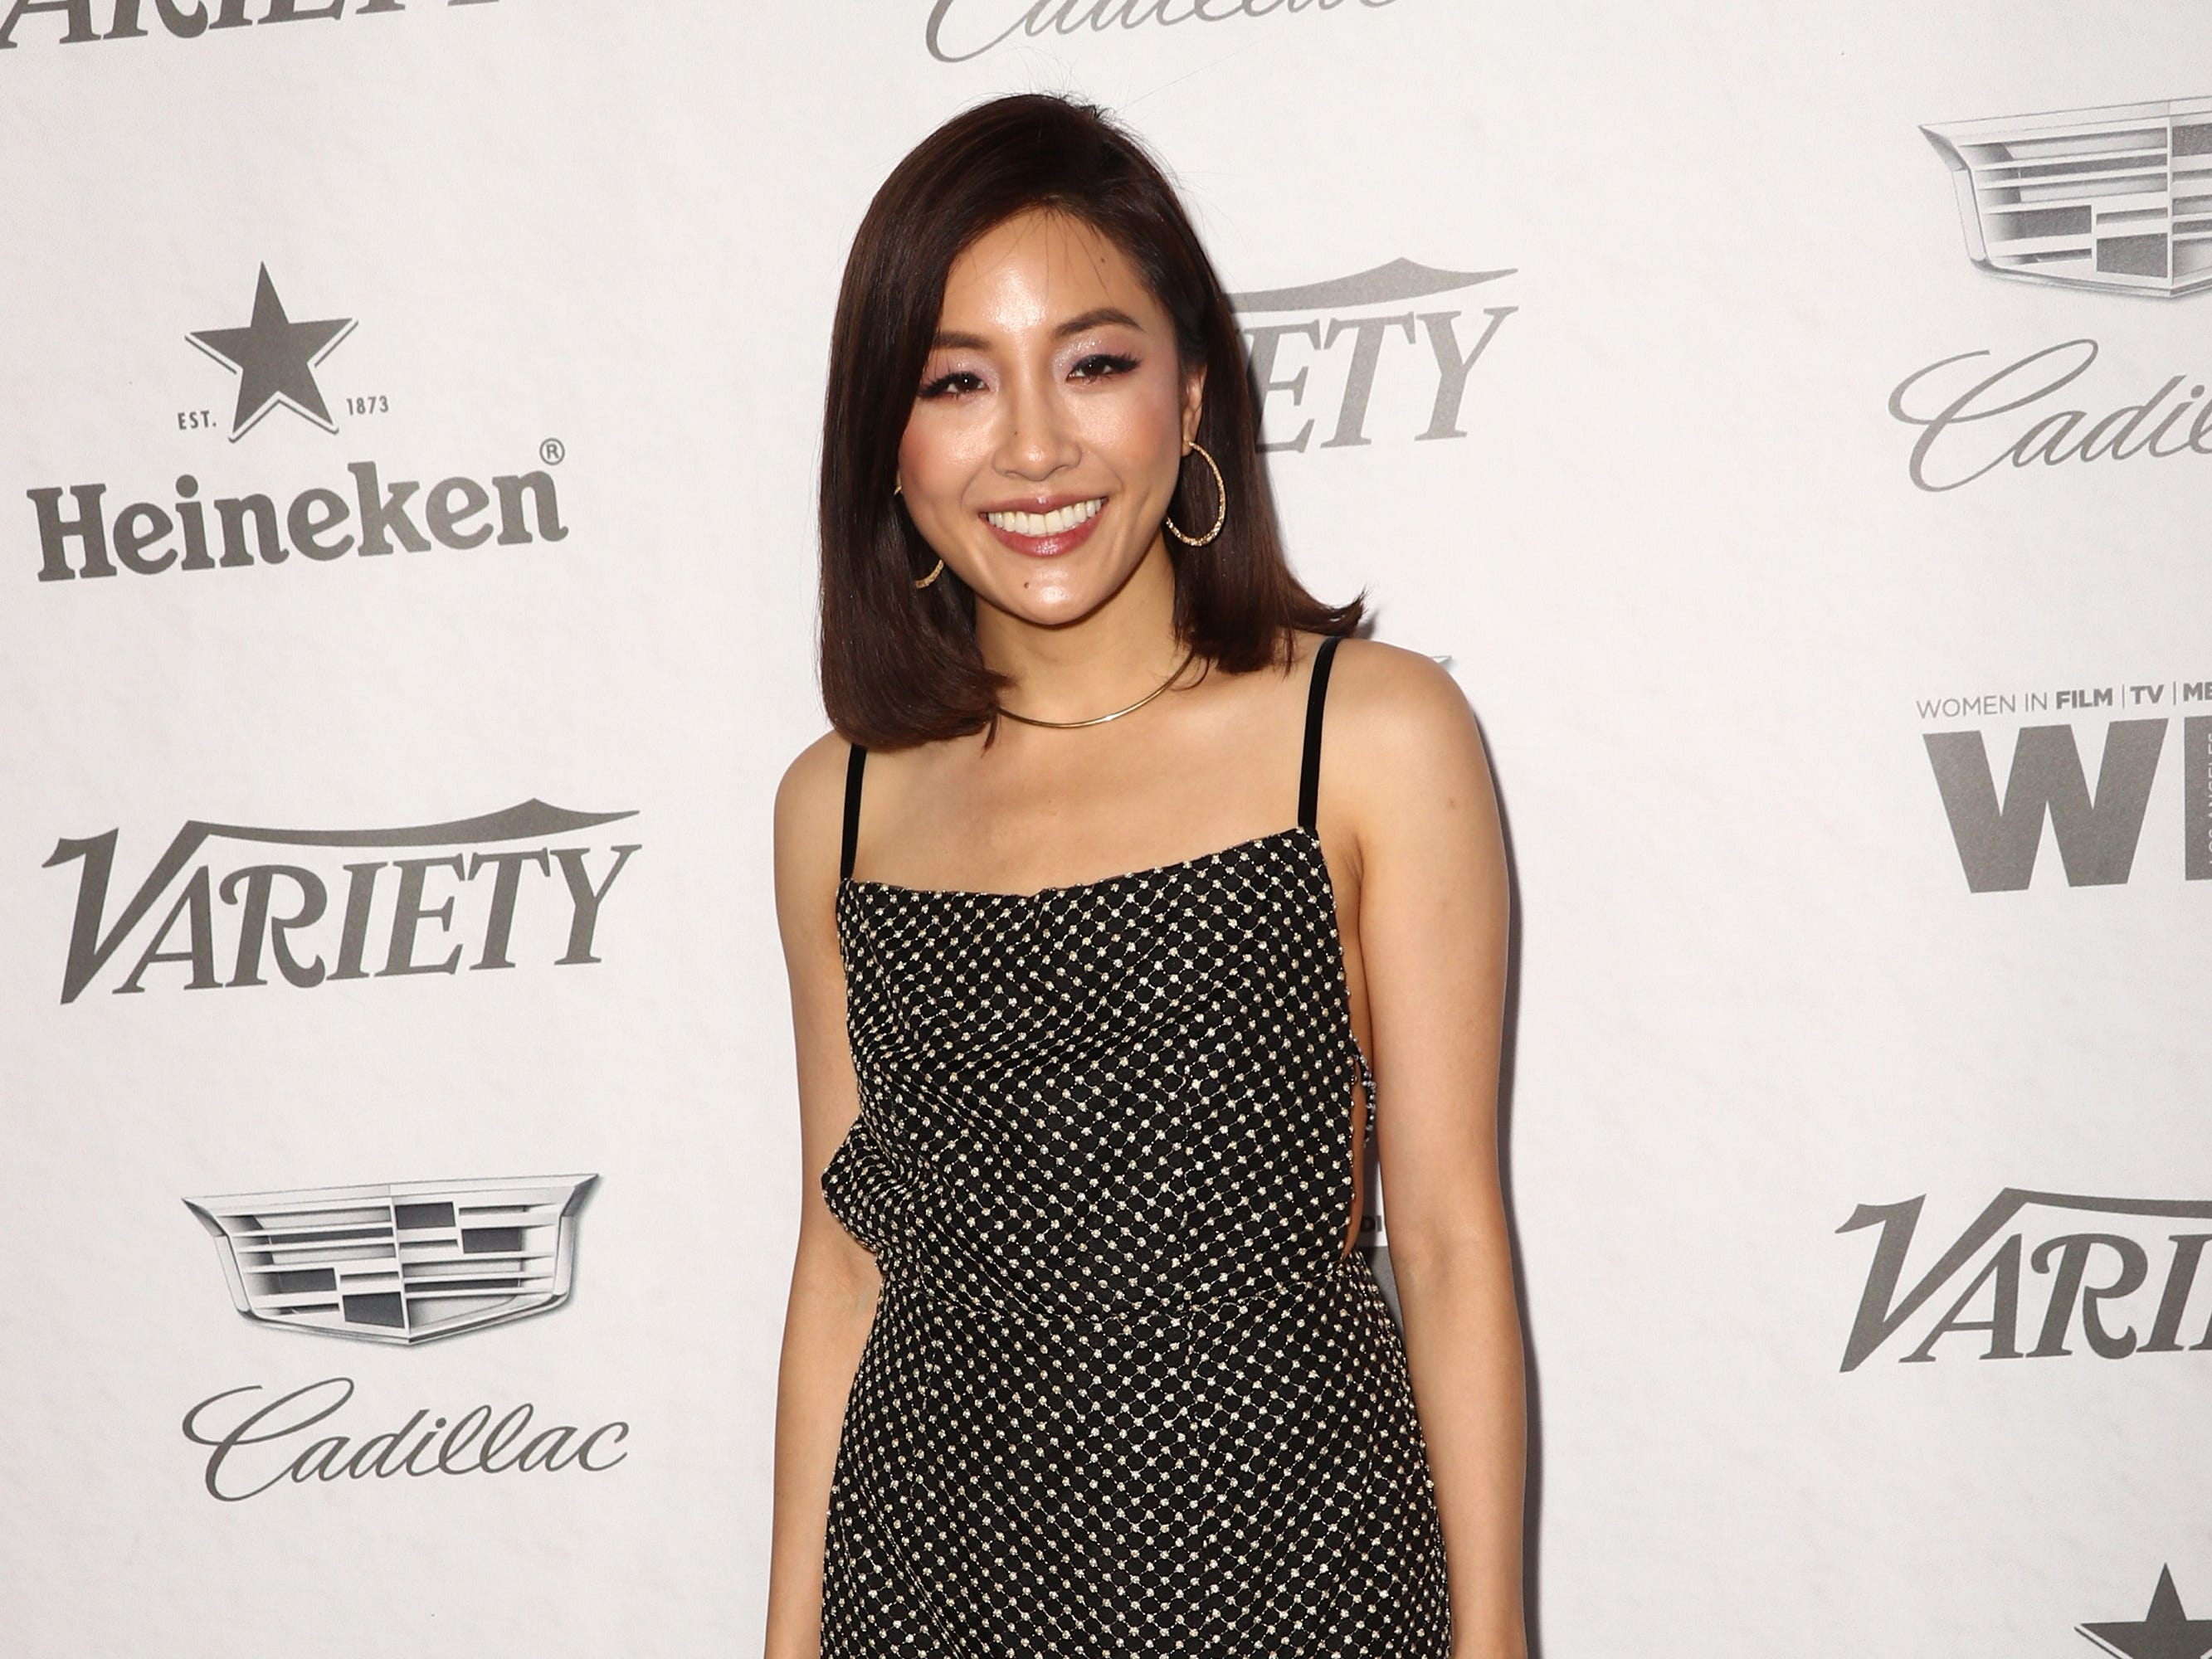 WEST HOLLYWOOD, CA - SEPTEMBER 15:  Constance Wu attends Variety and Women in Film's 2018 Pre-Emmy Celebration at Cecconi's on September 15, 2018 in West Hollywood, California.  (Photo by Frederick M. Brown/Getty Images) ORG XMIT: 775218358 ORIG FILE ID: 1033997838